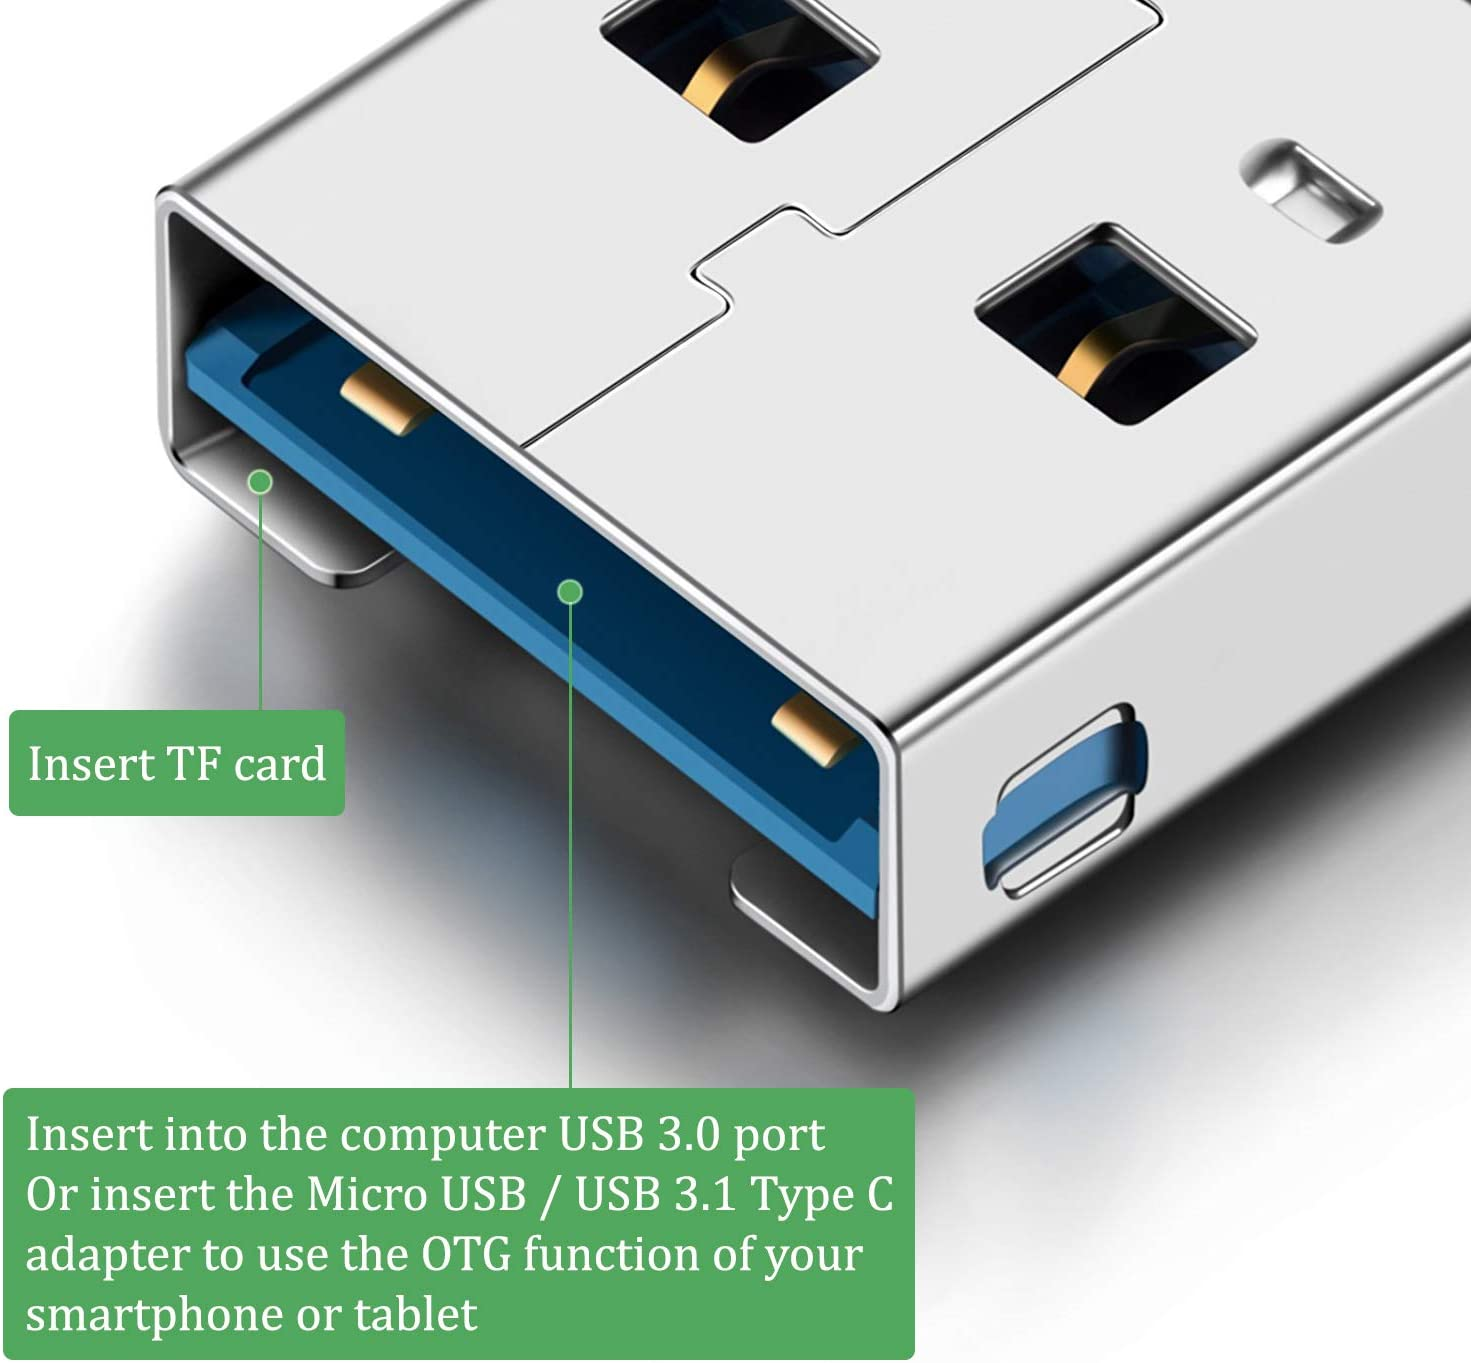 Blizim Mini Card Reader USB 3.0 TF Card with Micro USB and Type C OTG Adapter